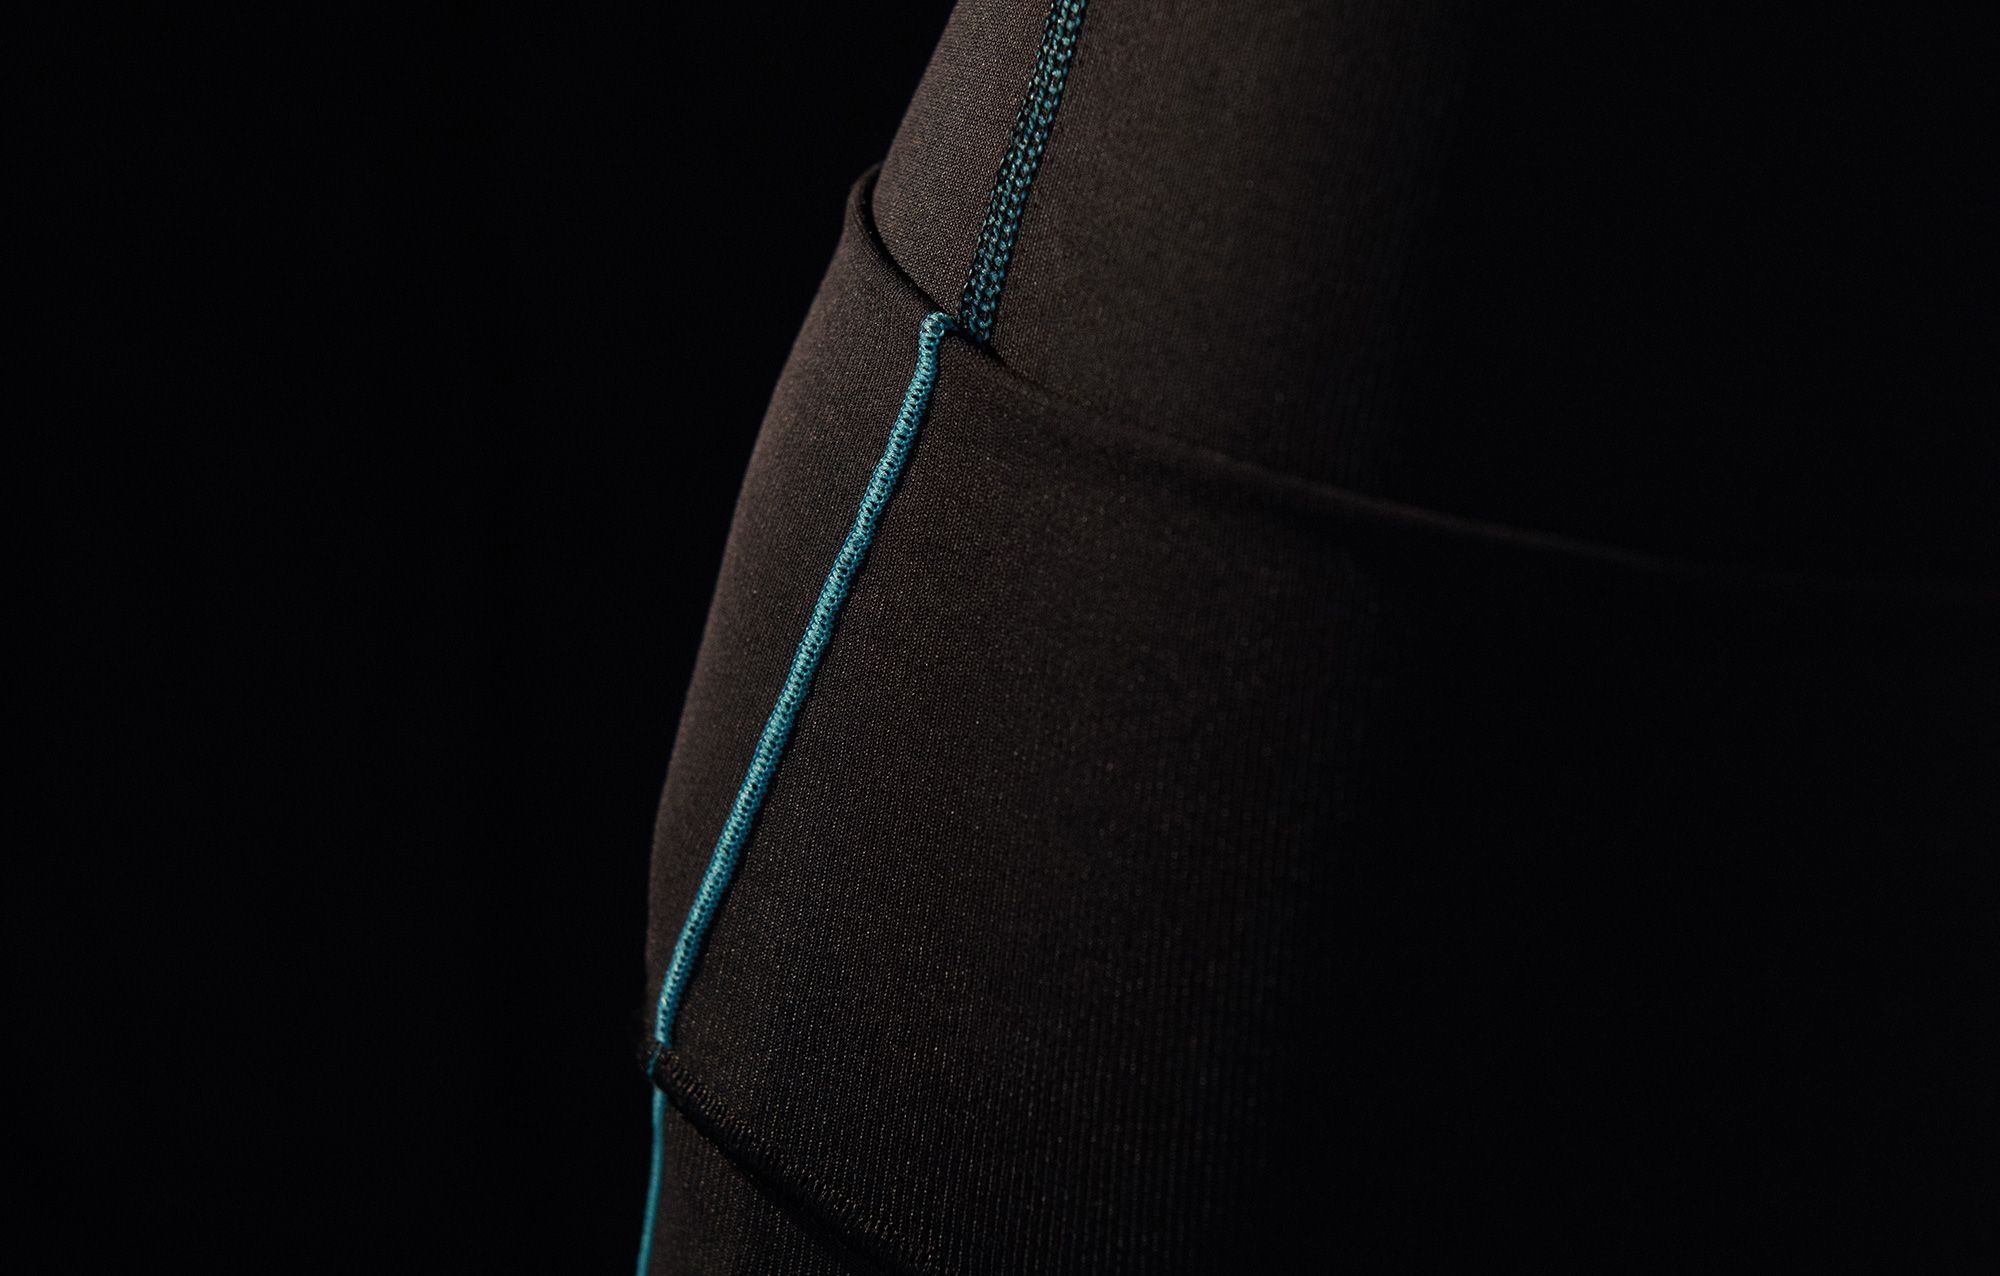 Detailed photograph of a Marena Sport garment's stitching